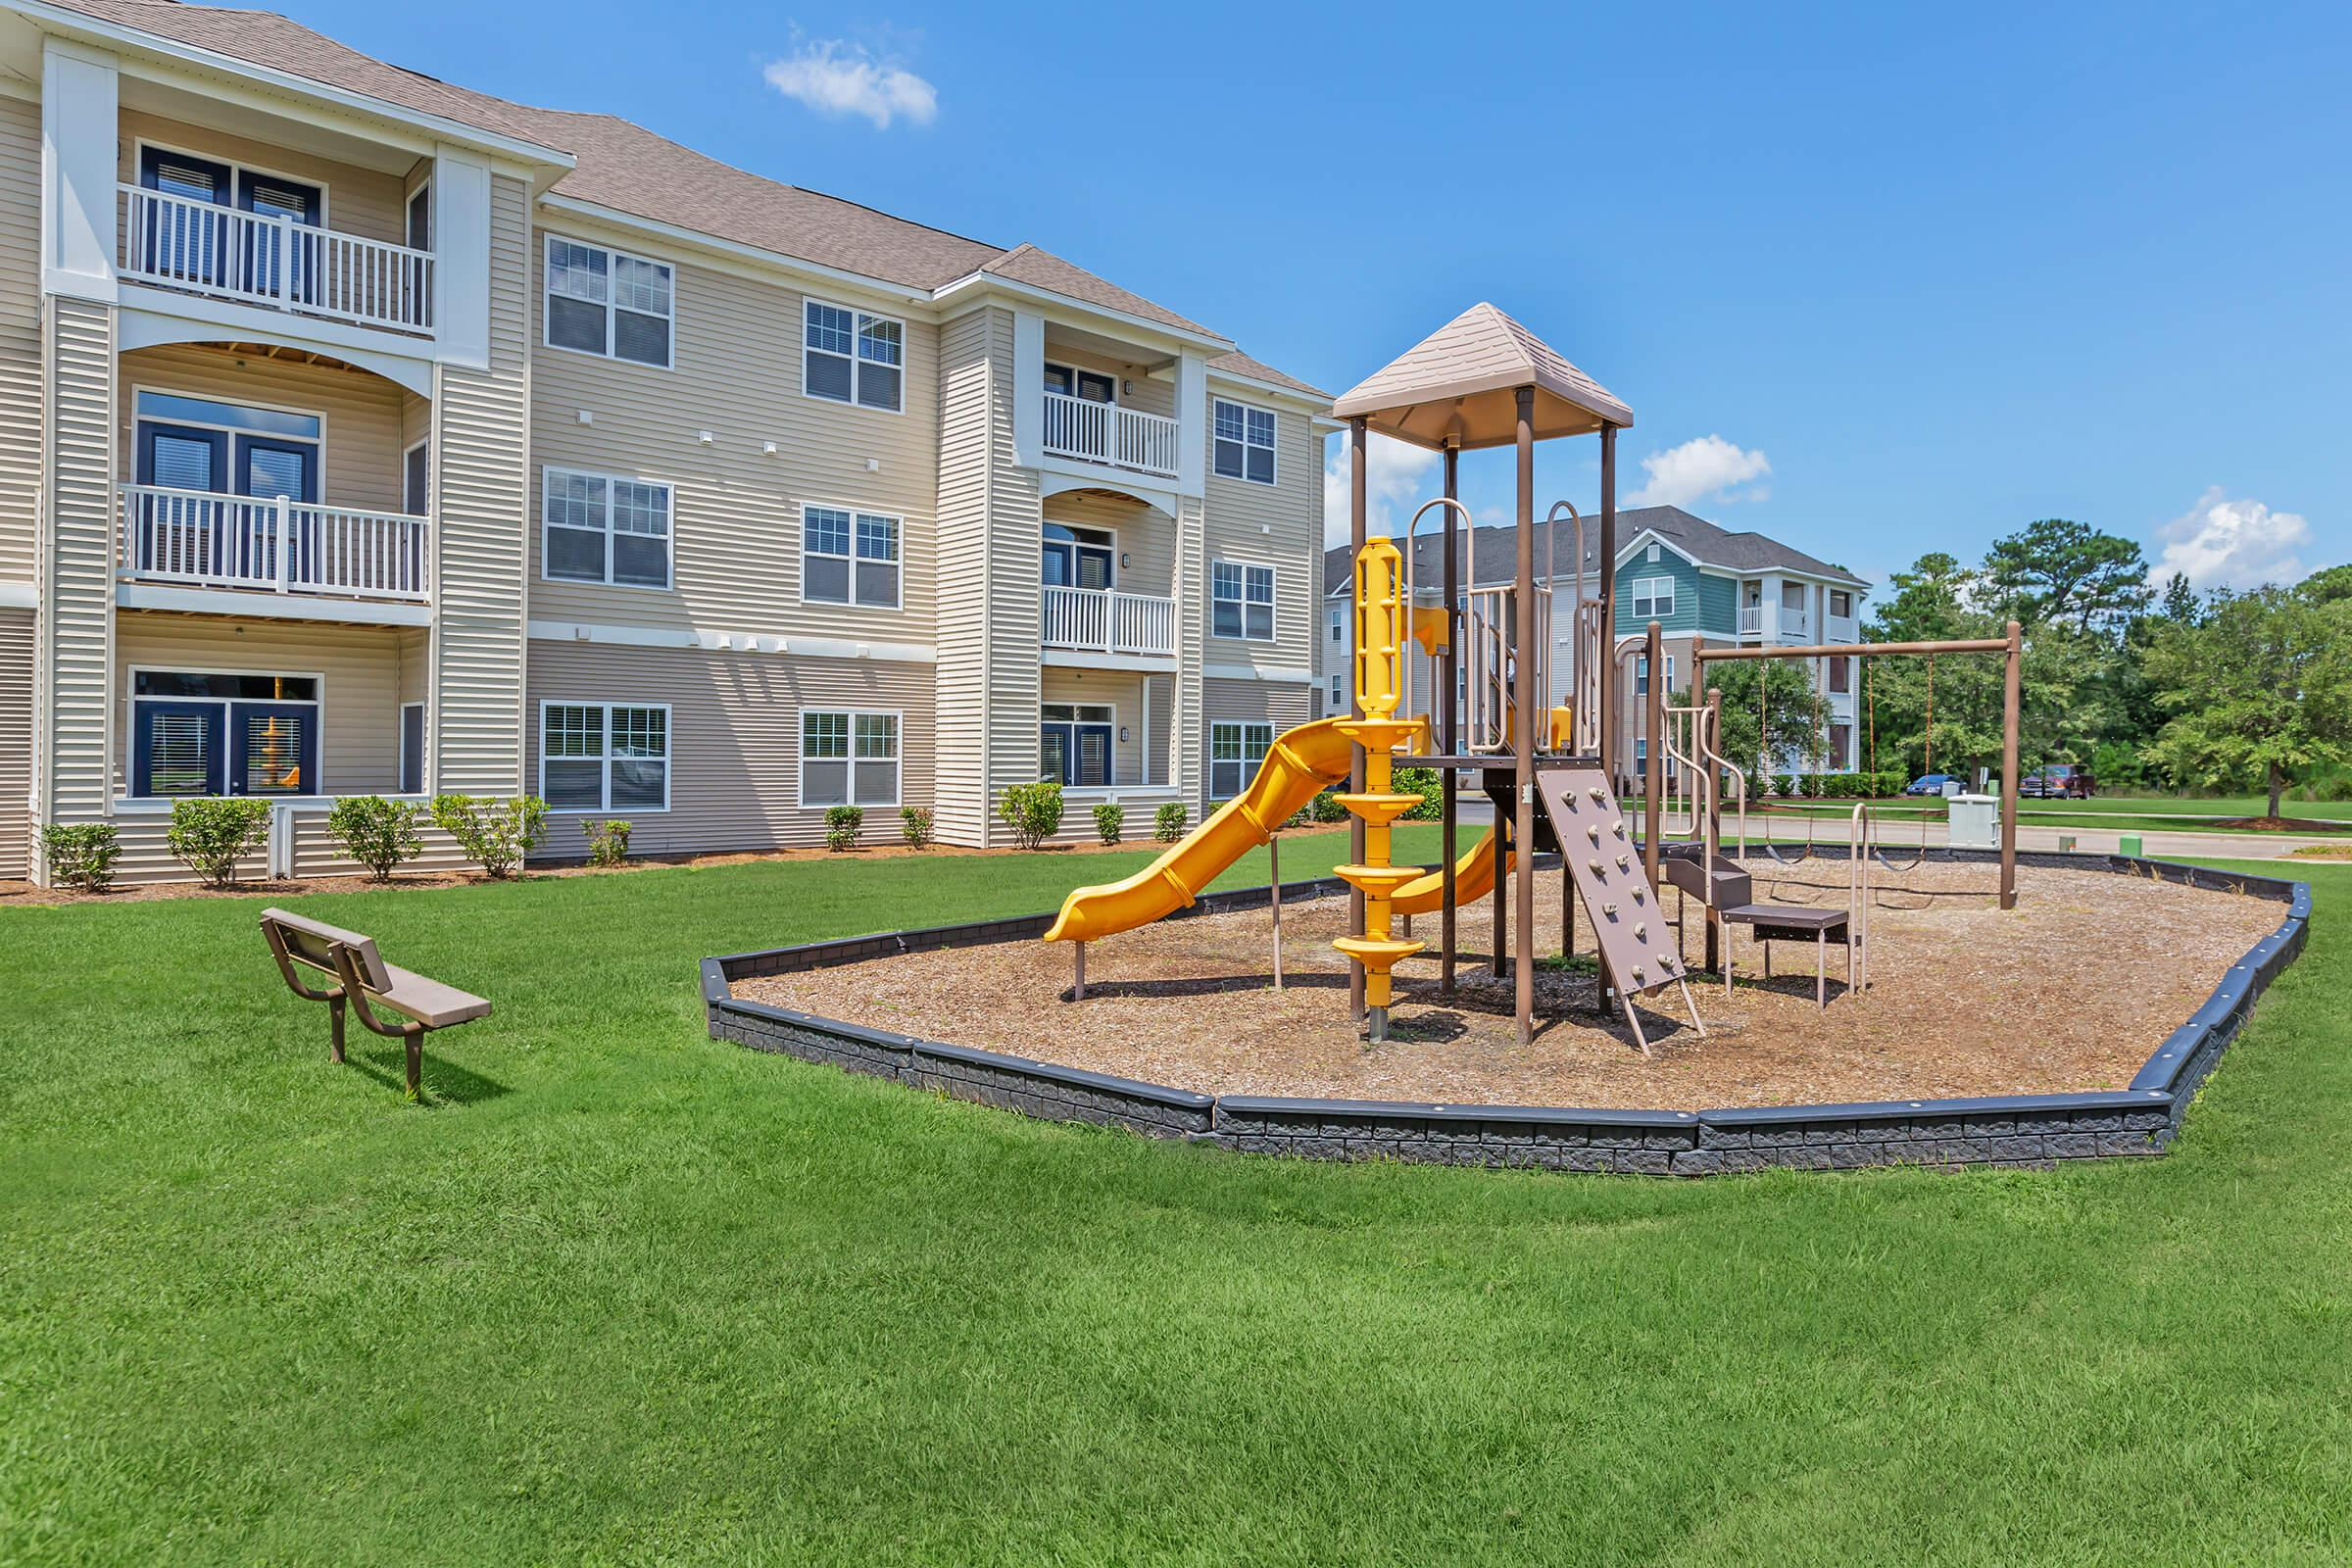 Family Fun Time At New Providence Park In Wilmington, NC